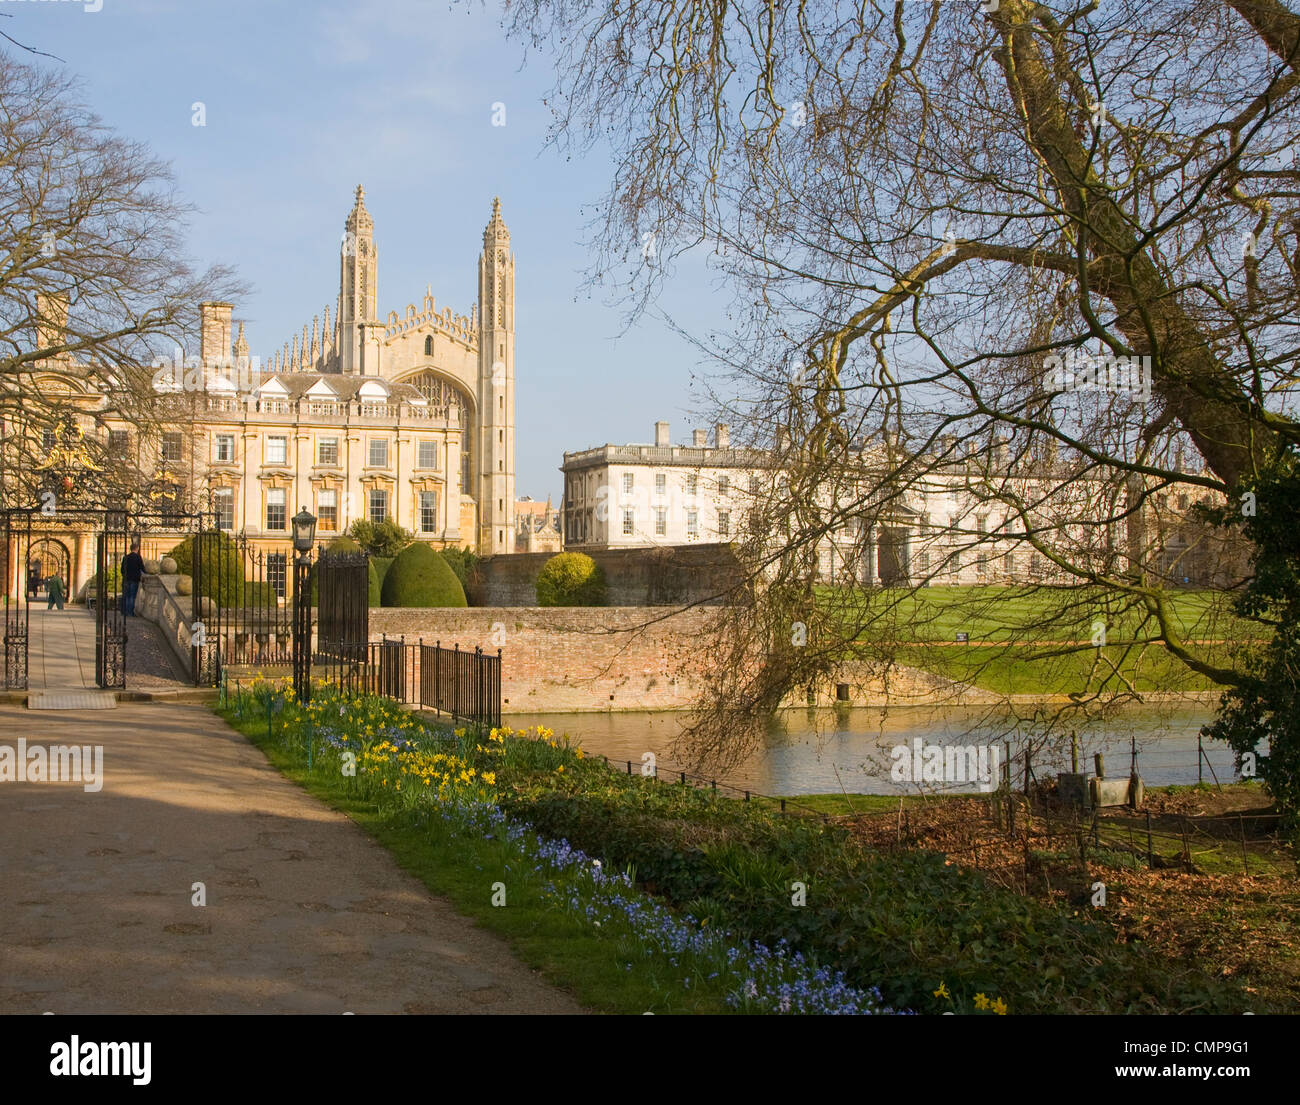 Clare and King's colleges, University of Cambridge, England - Stock Image